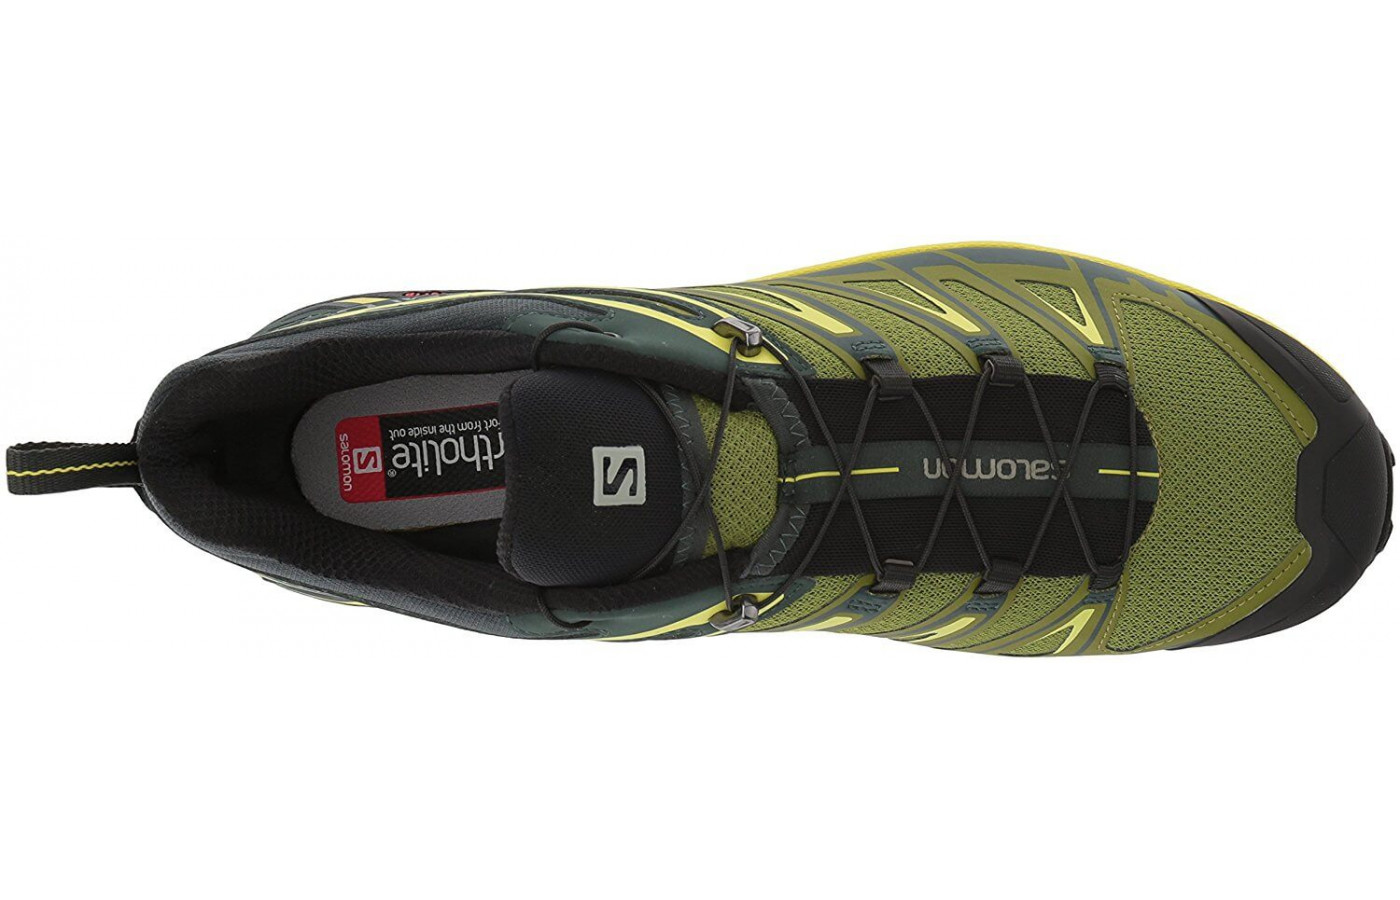 A top view of the Salomon X Ultra 3.